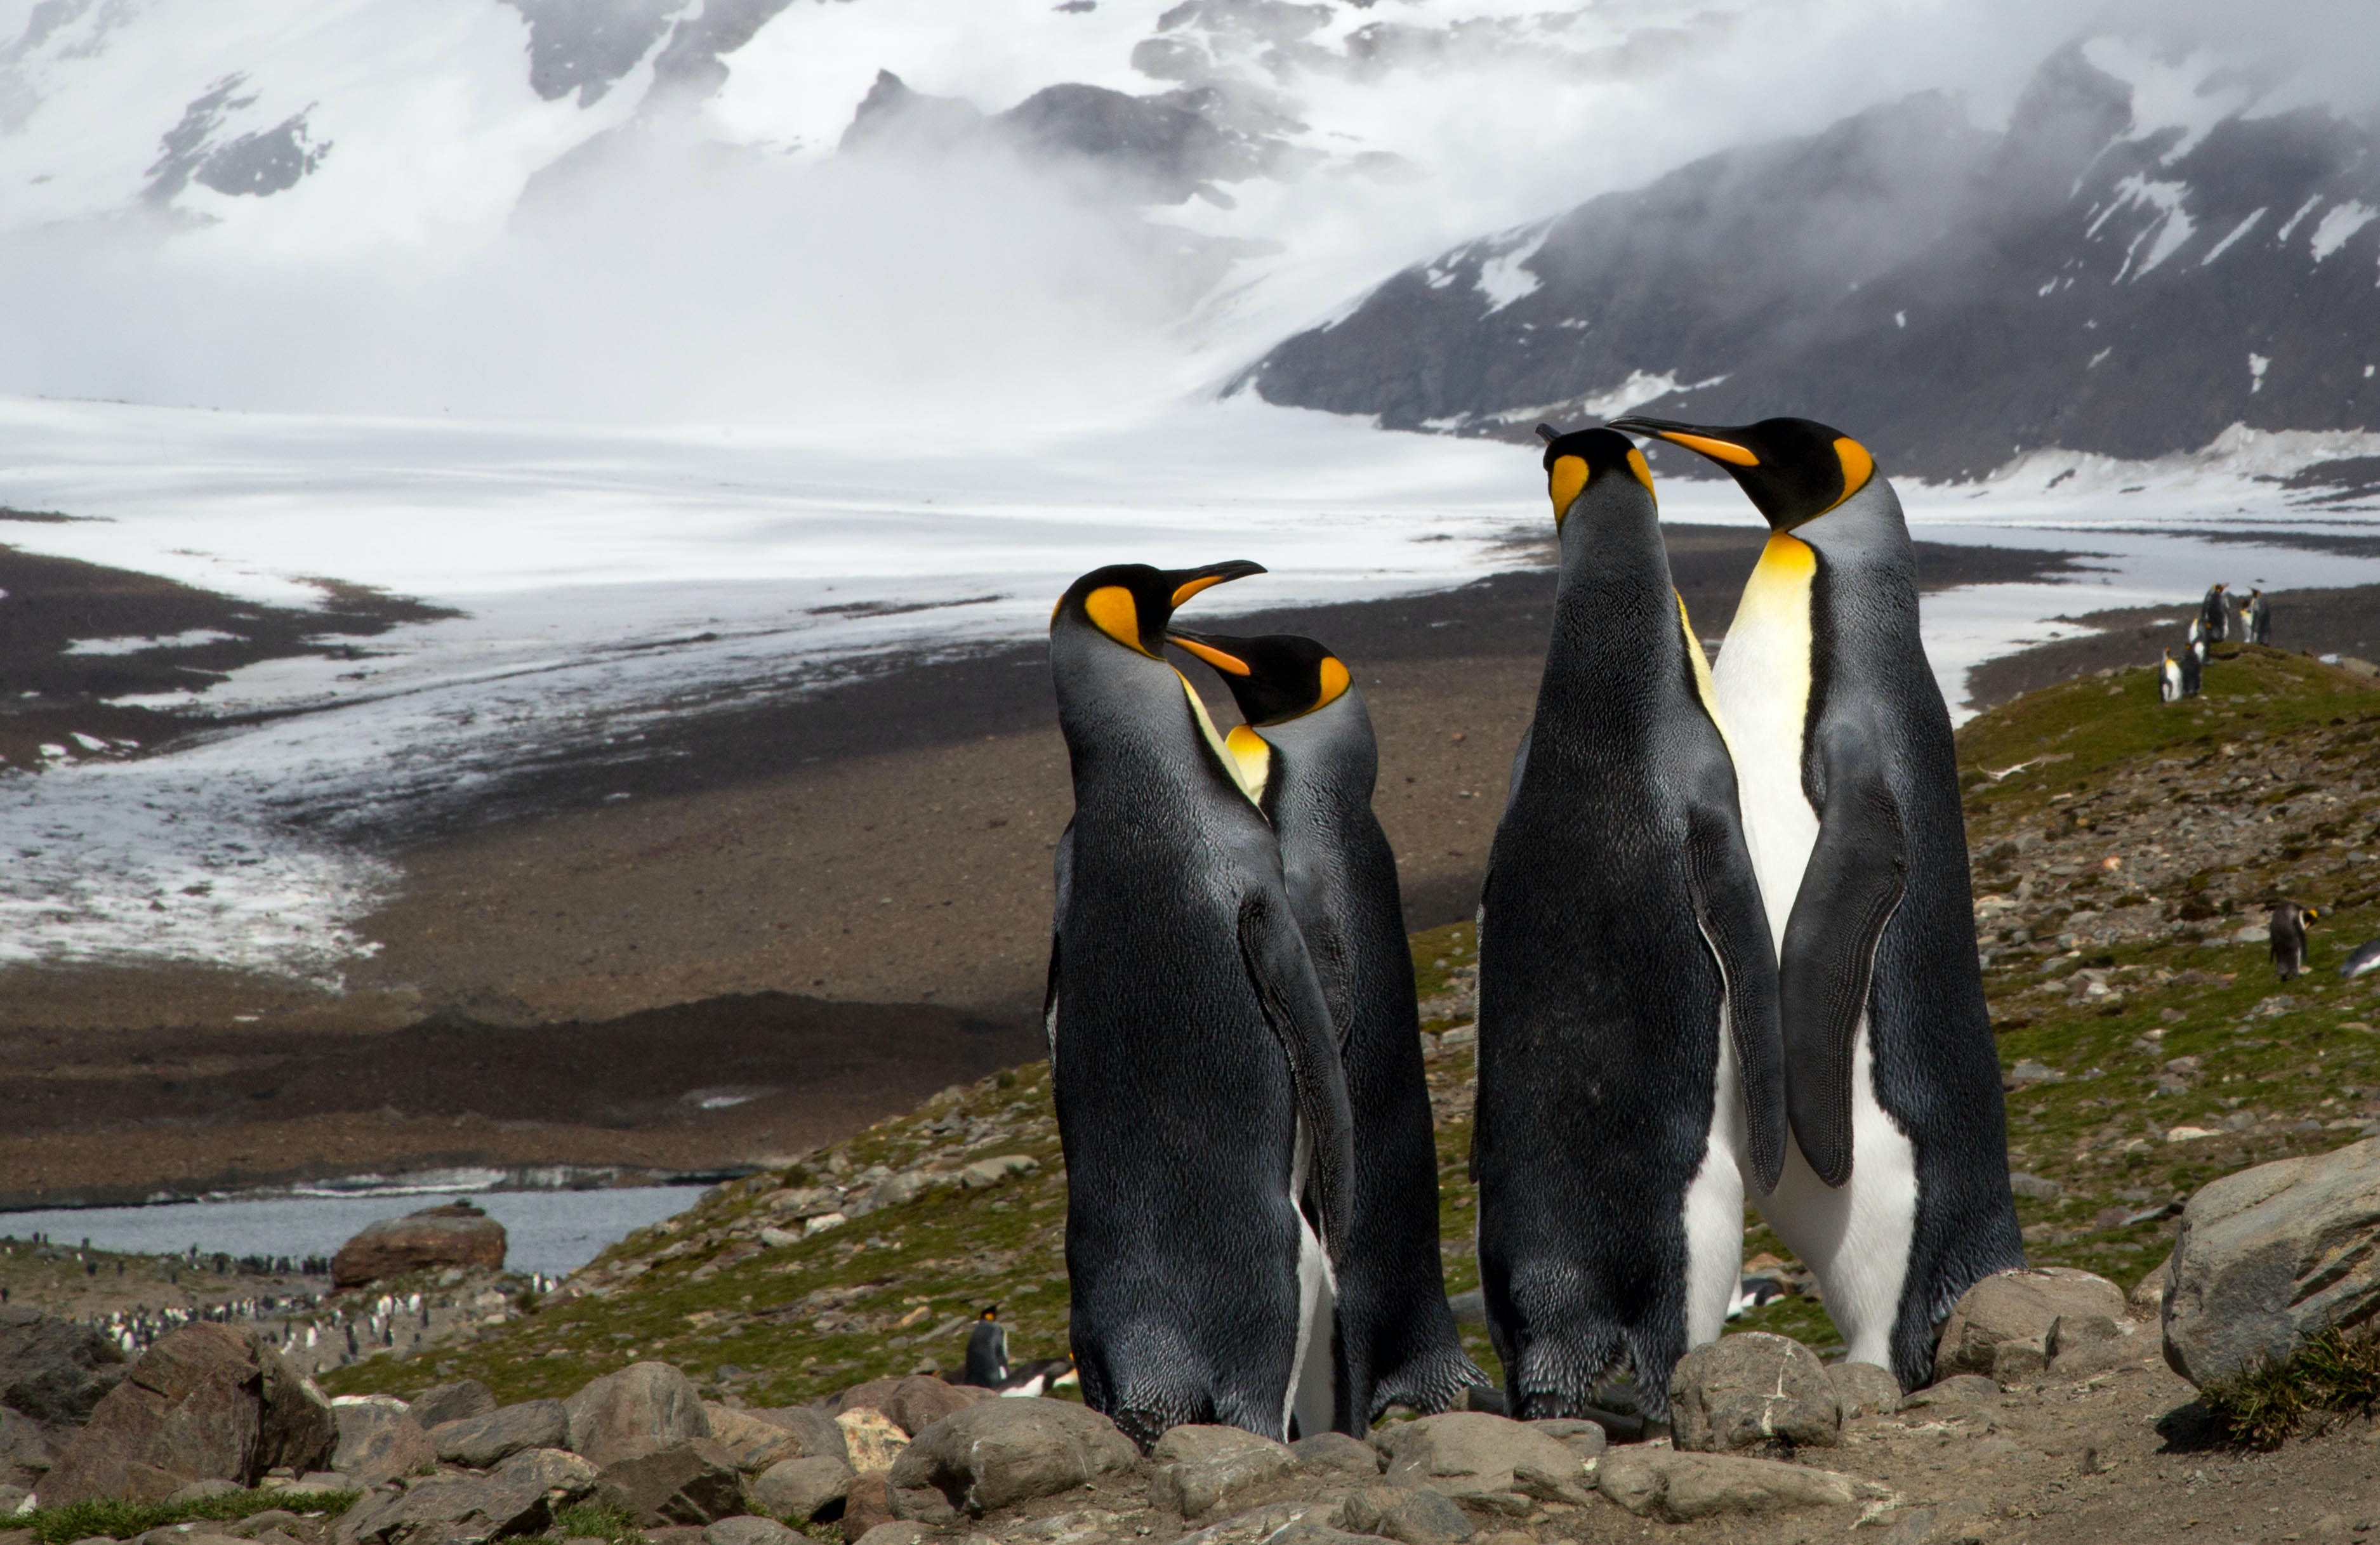 penguins standing on rocky mountain